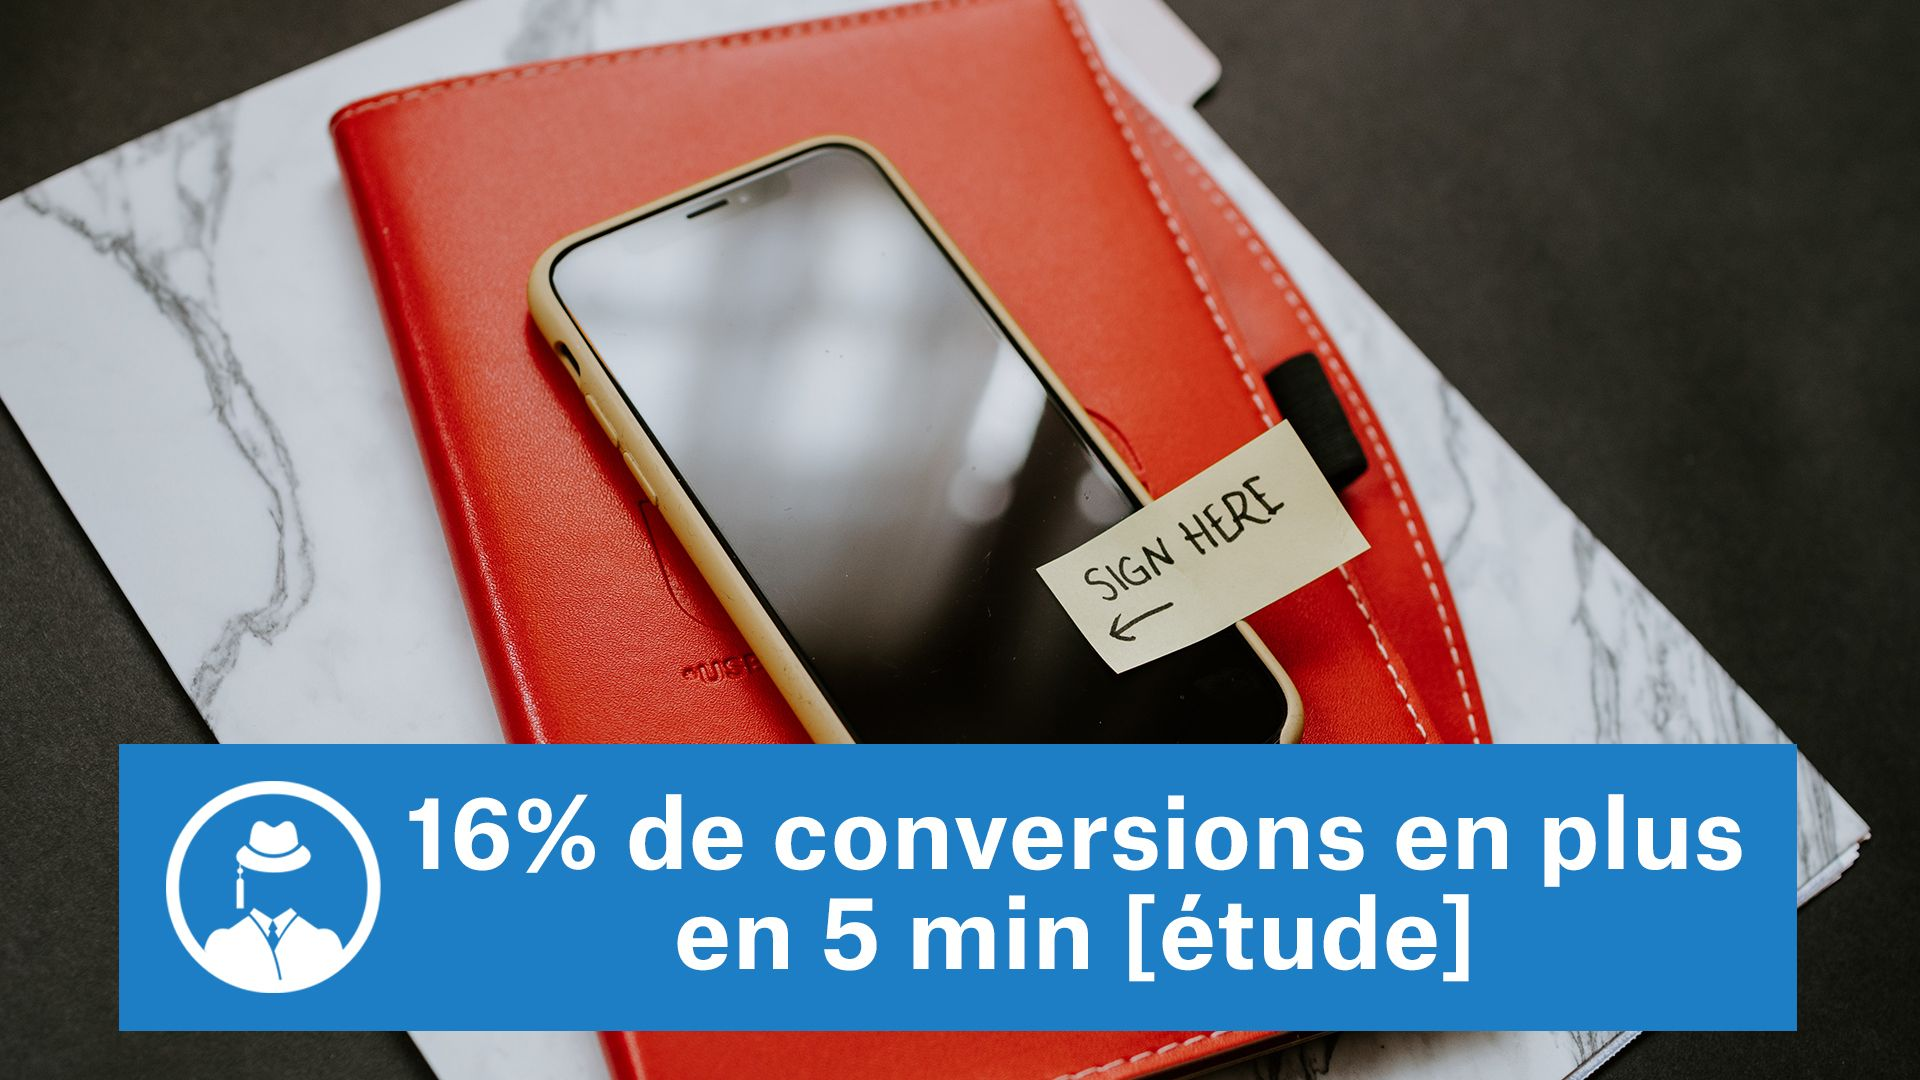 16% de conversions supplémentaires en 5 minutes [étude] #GrowthHacking #WebMarketing #FormationGrowthHacking #CentreDeFormationFrance #TunnelAARRR #AARRR #SocialMedia #CommunityManagement #SEO #MarketingDigital #SiteWeb